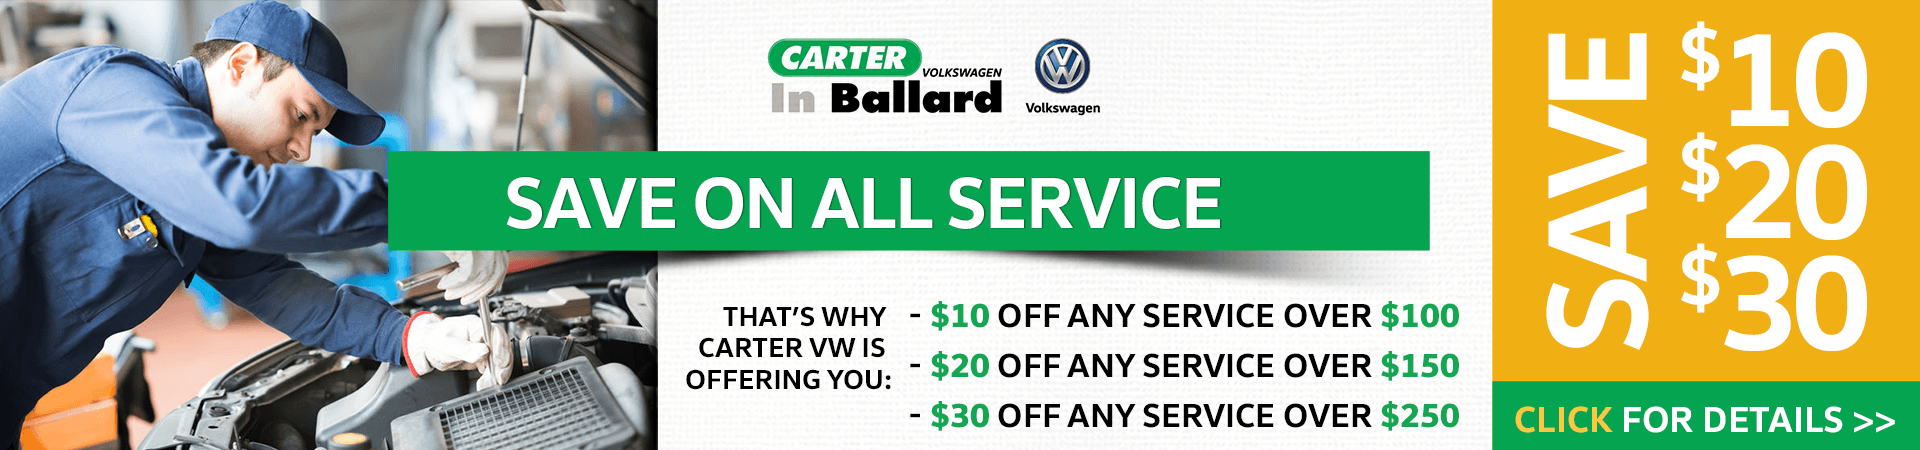 Spend More and Save More At Carter VW